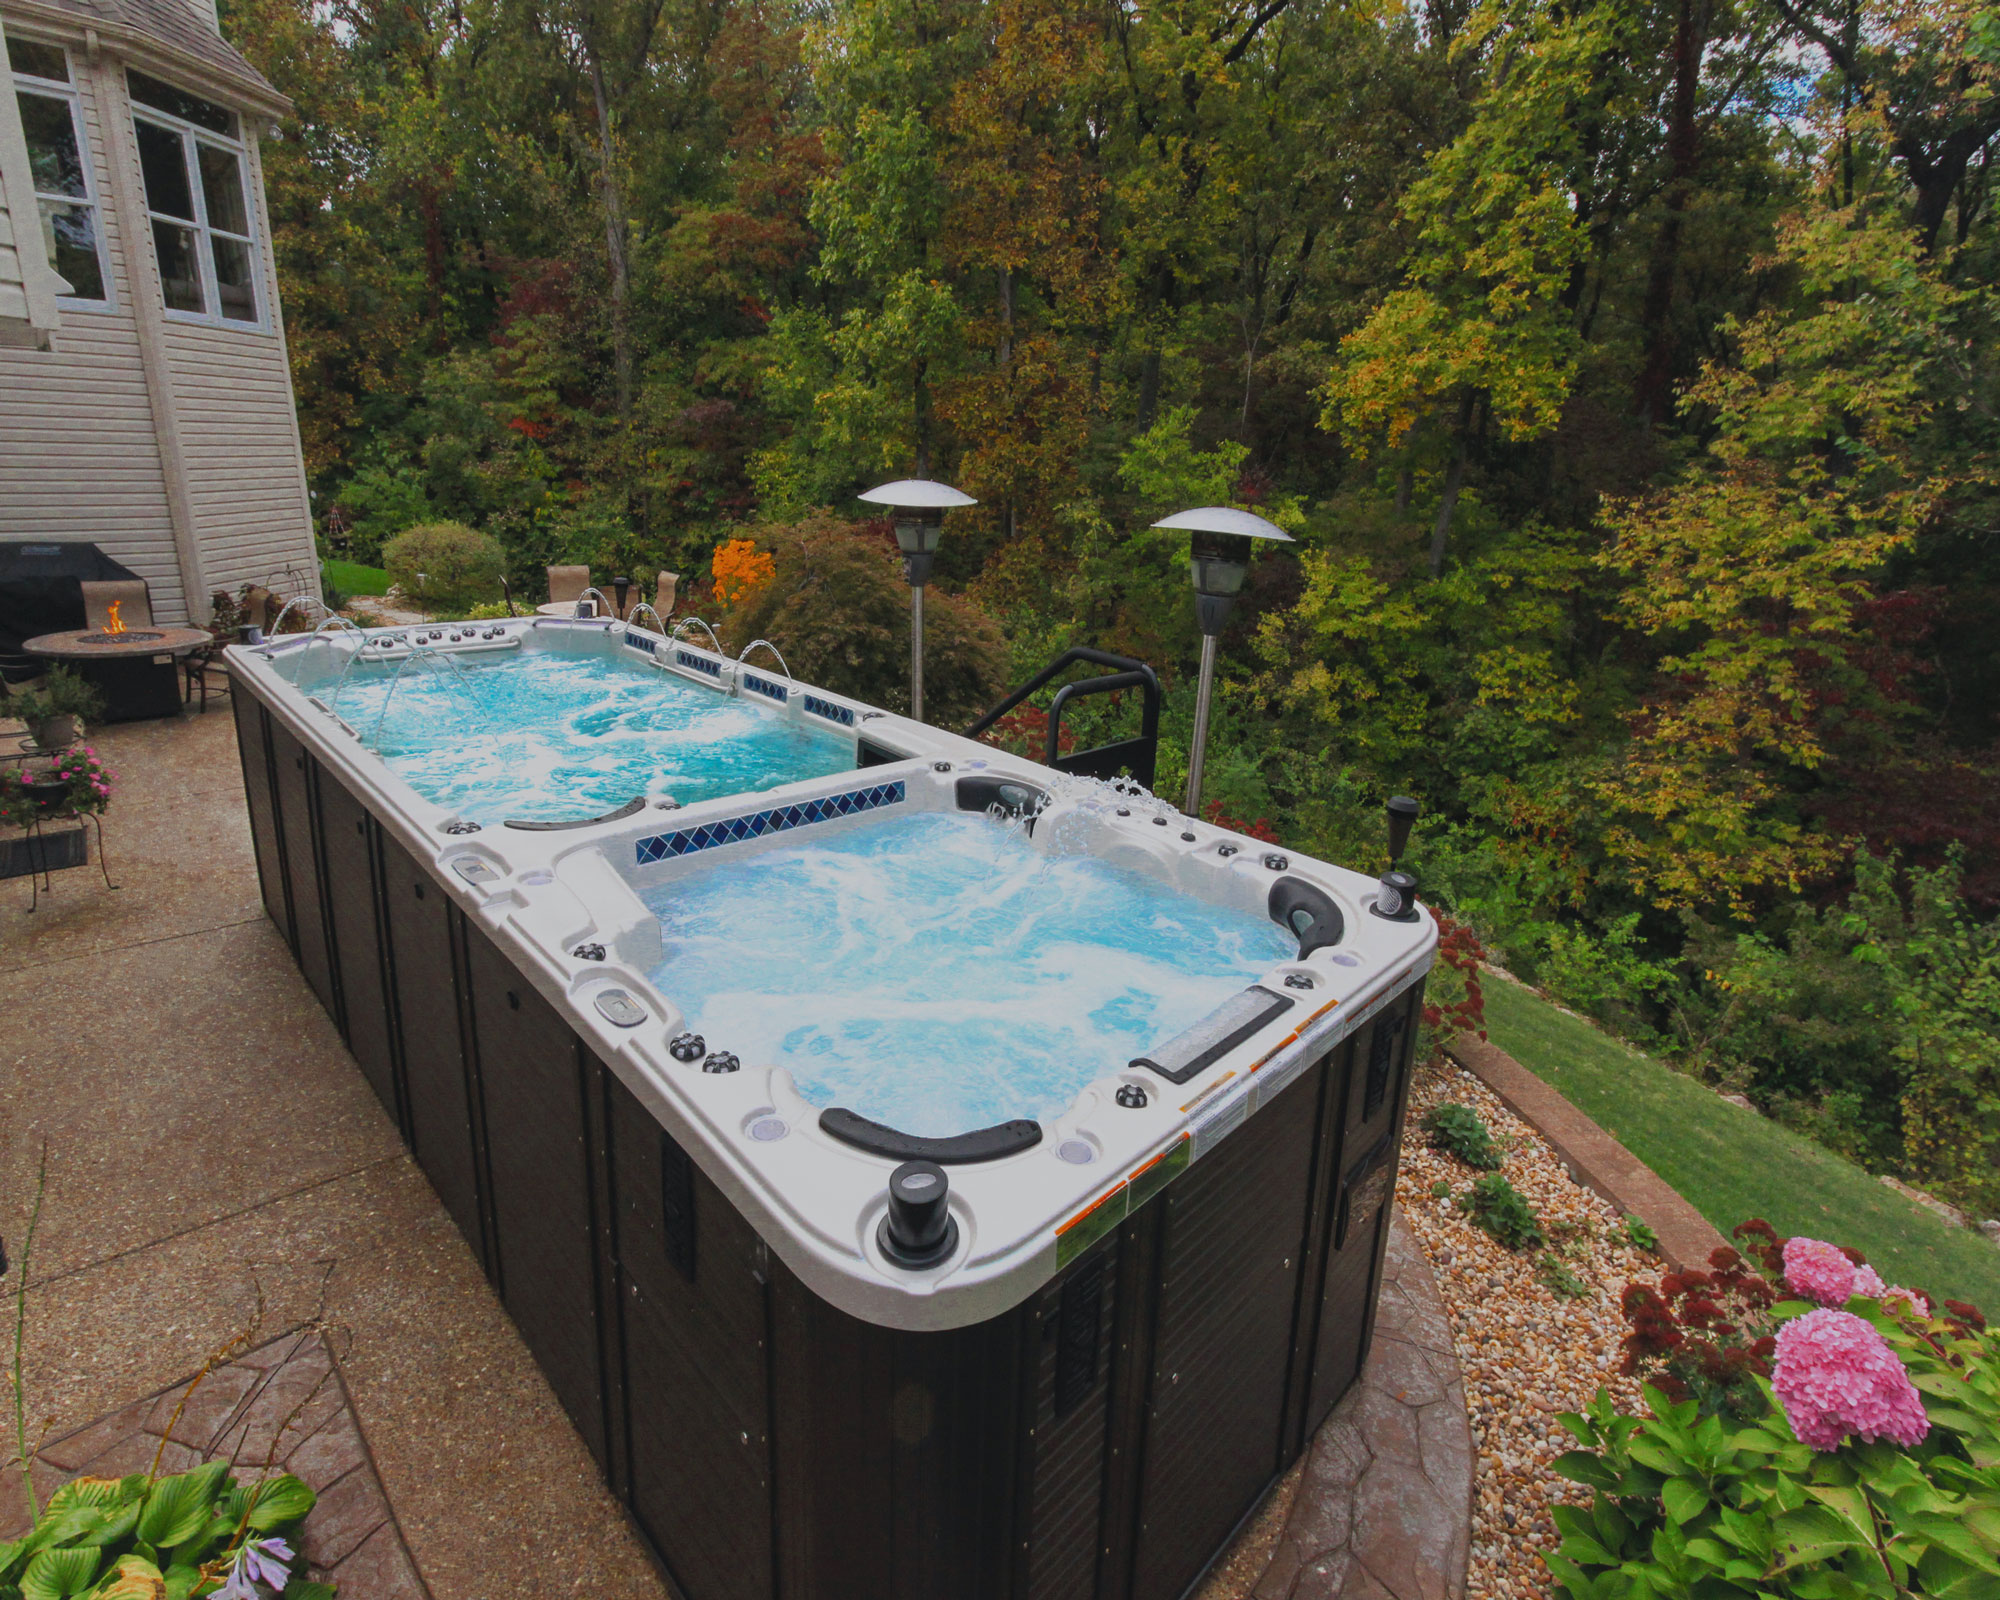 hot tubs and alloworigin swim disposition accesskeyid repair dealers spas tub near me outlet spa